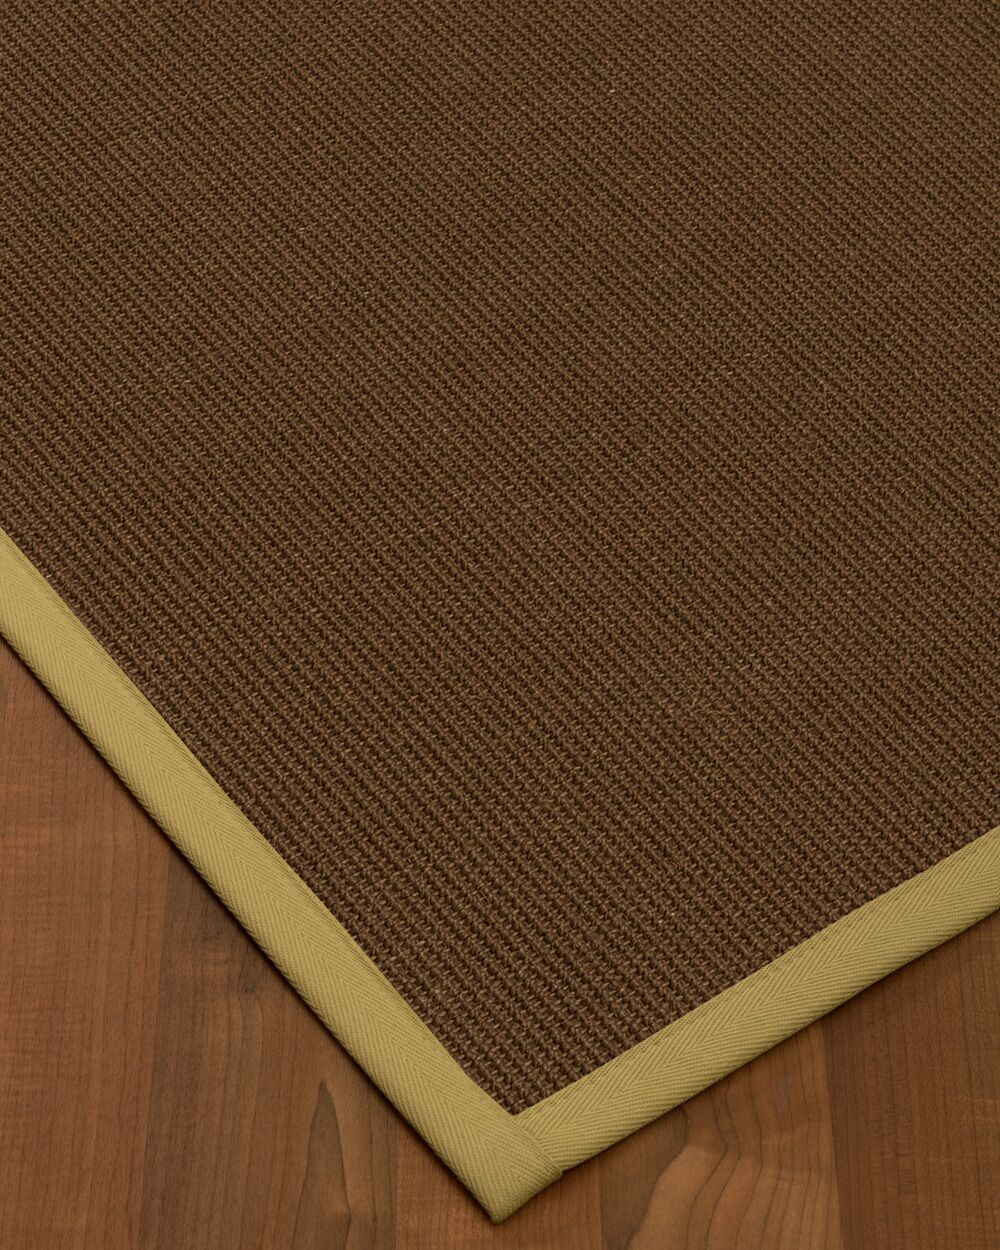 Heider Border Hand-Woven Brown/Sand Area Rug Rug Size: Rectangle 8' x 10', Rug Pad Included: Yes